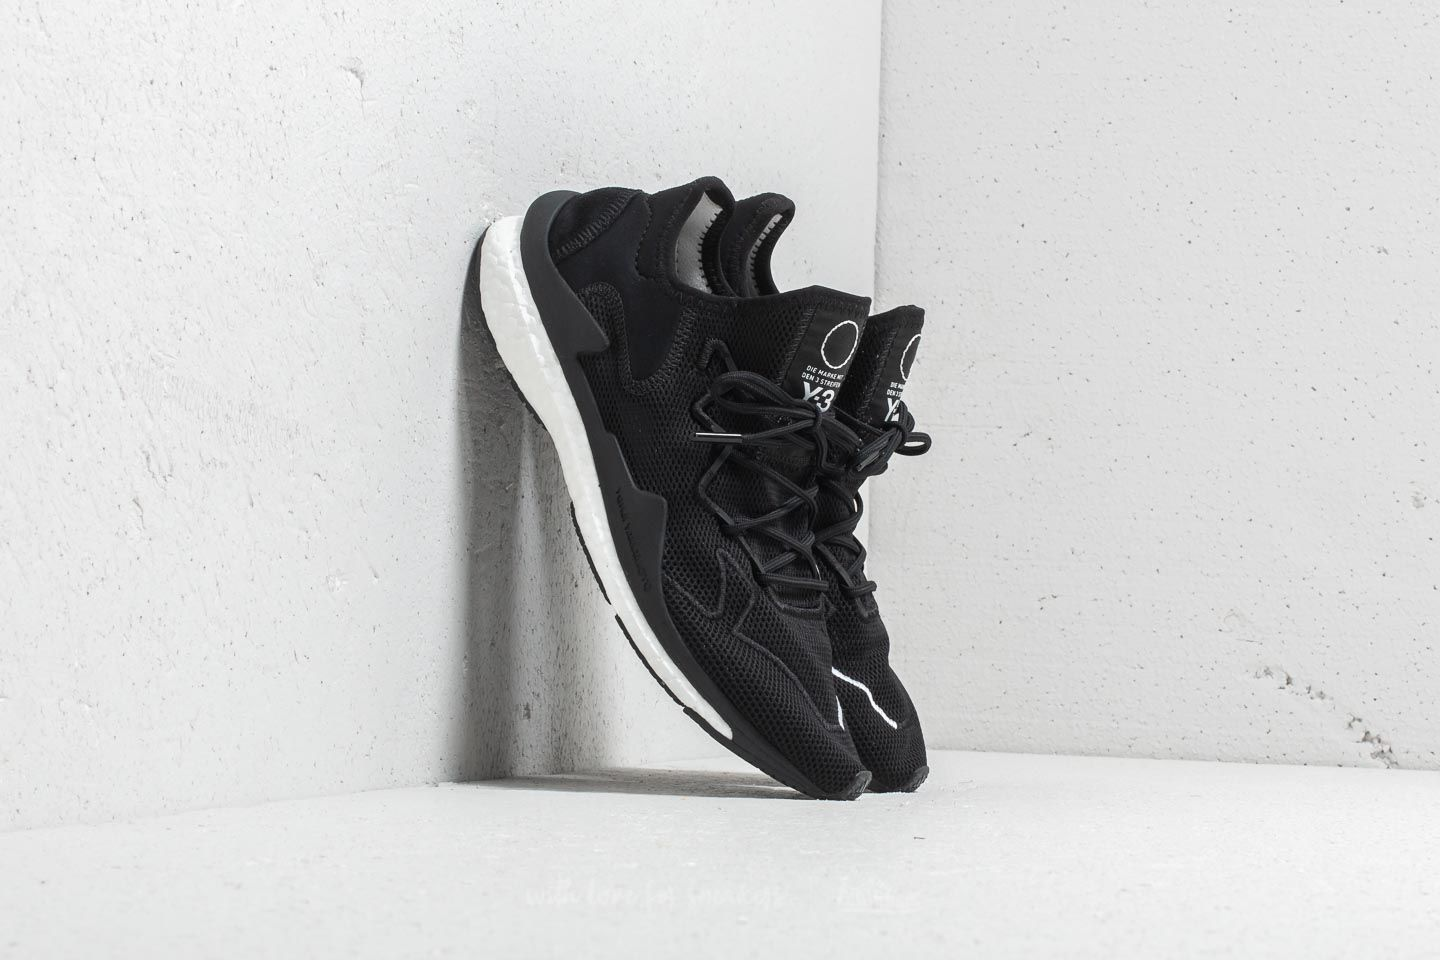 adidas Y-3 Adizero Runner - Black Y-3/Footwear White #D97837-Preorder Item-Navy Selected Shop